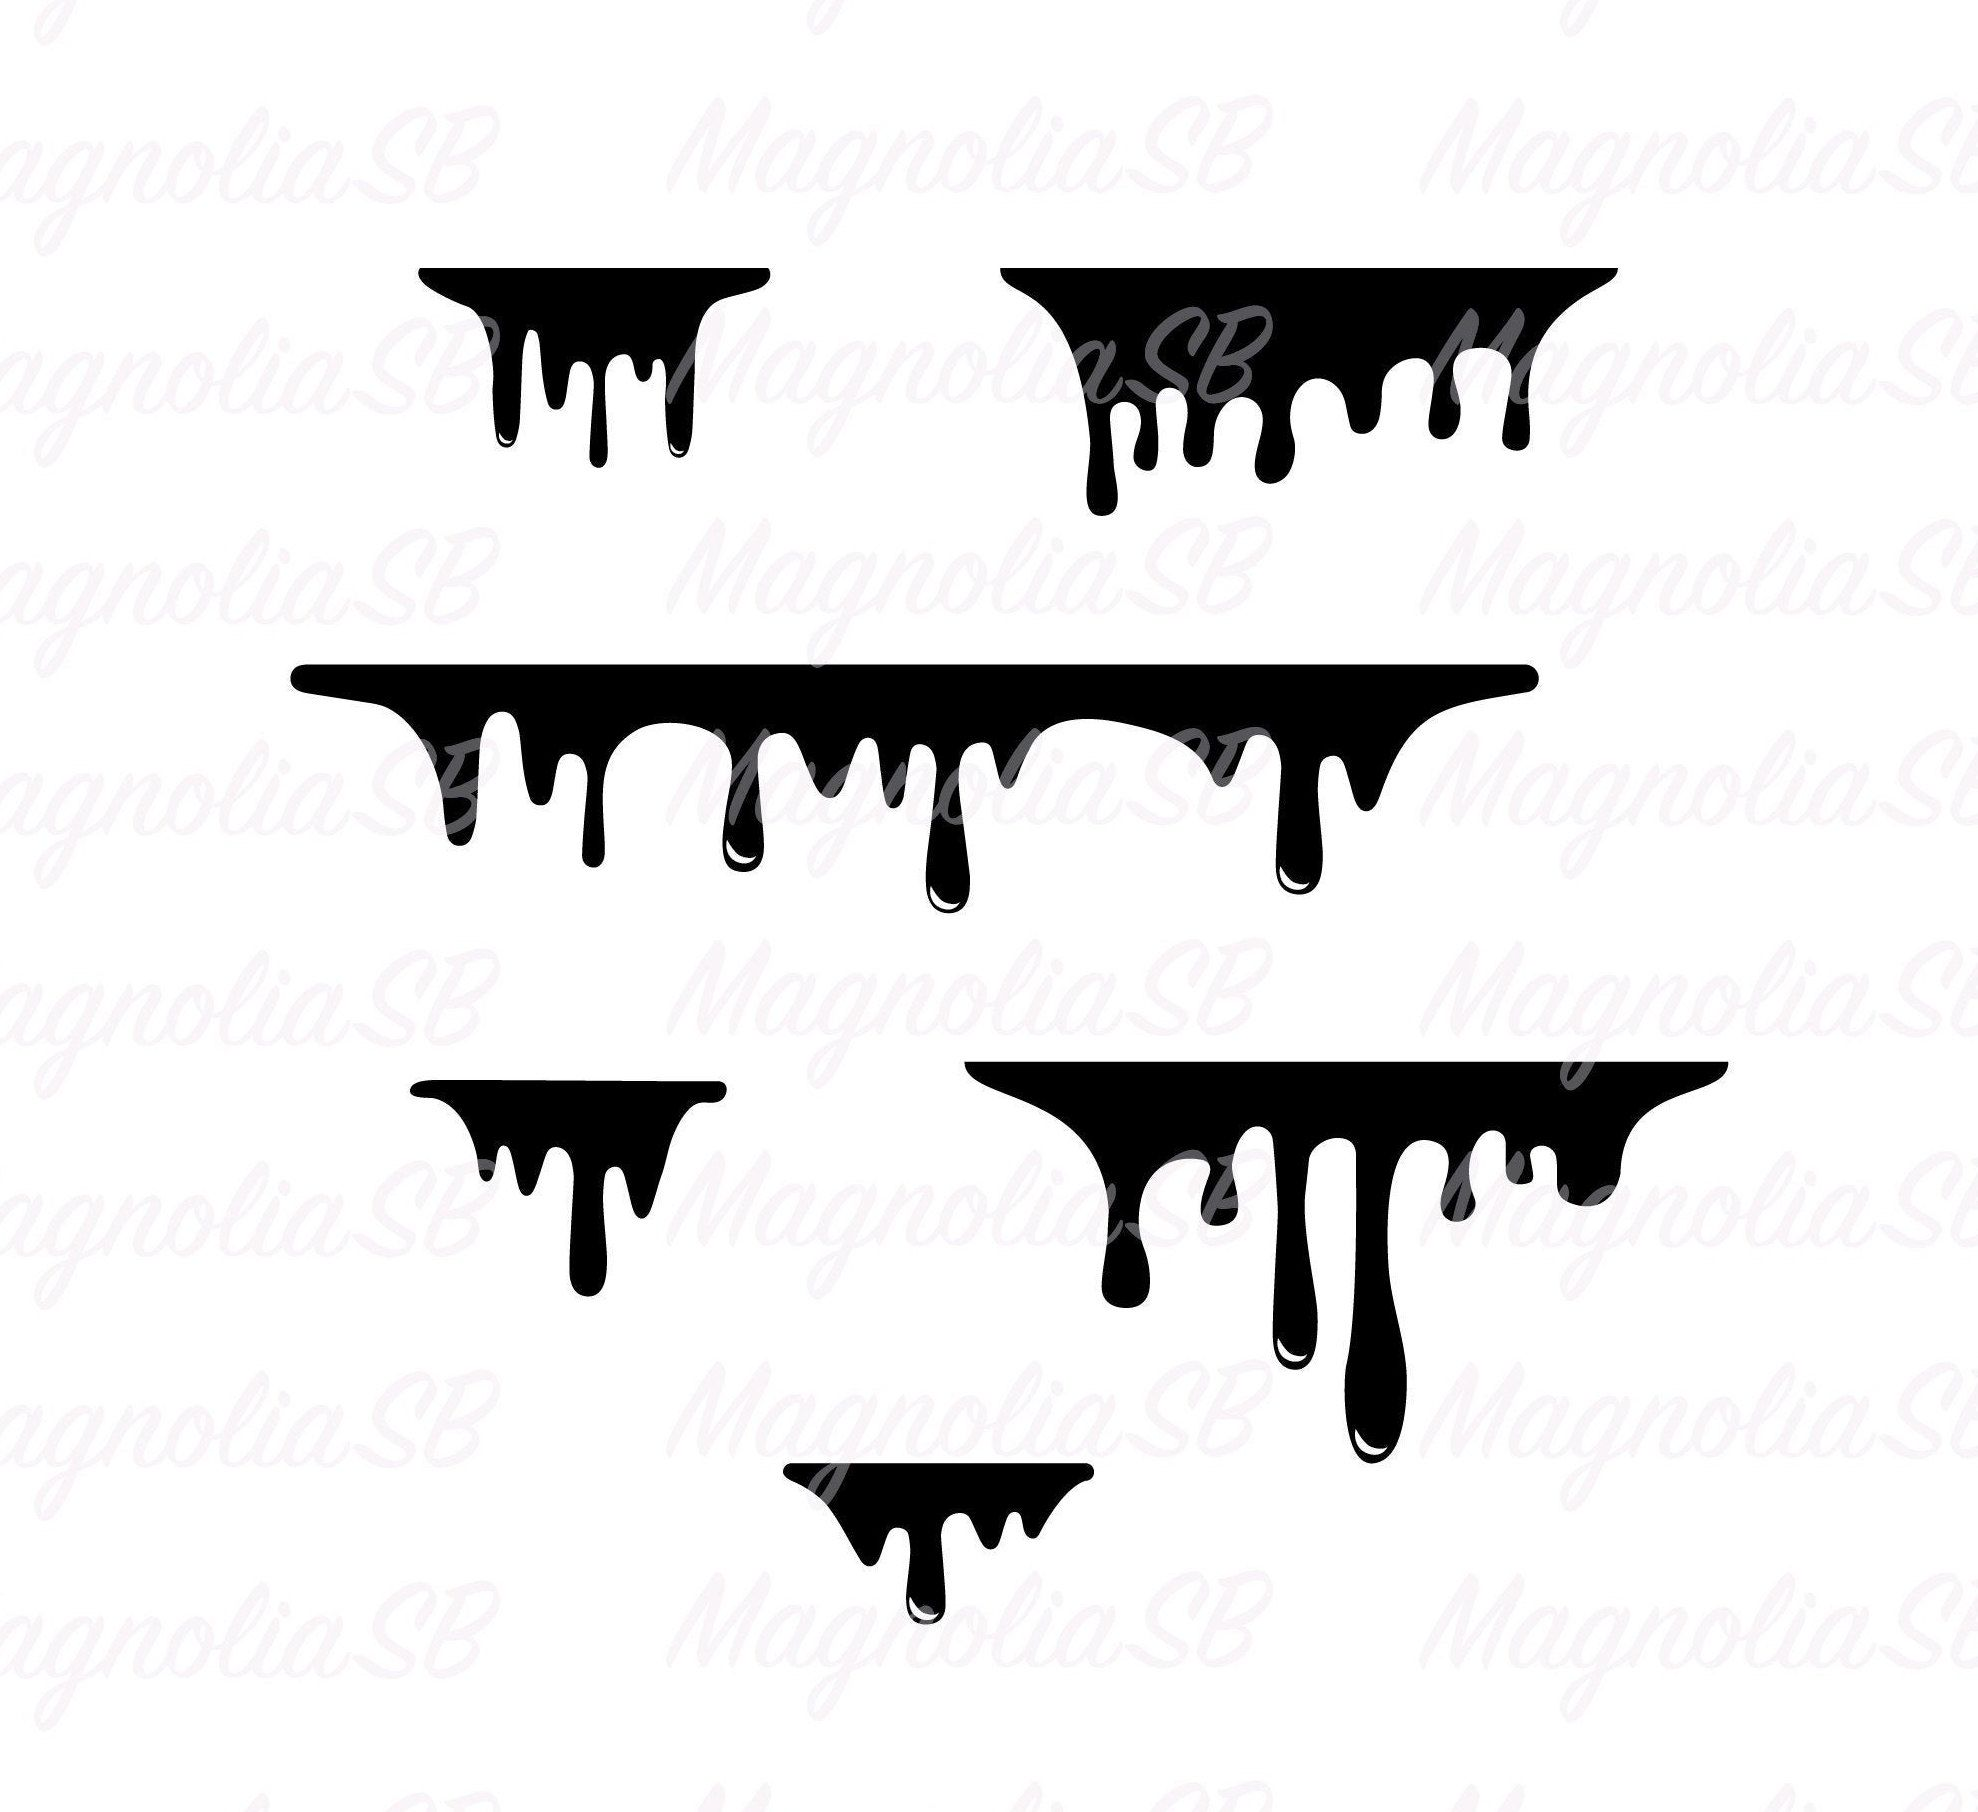 Dripping Svg Dripping Borders Dxf Dripping Png Silhouette Etsy In 2021 Drip Painting Paint Drip Design Painting